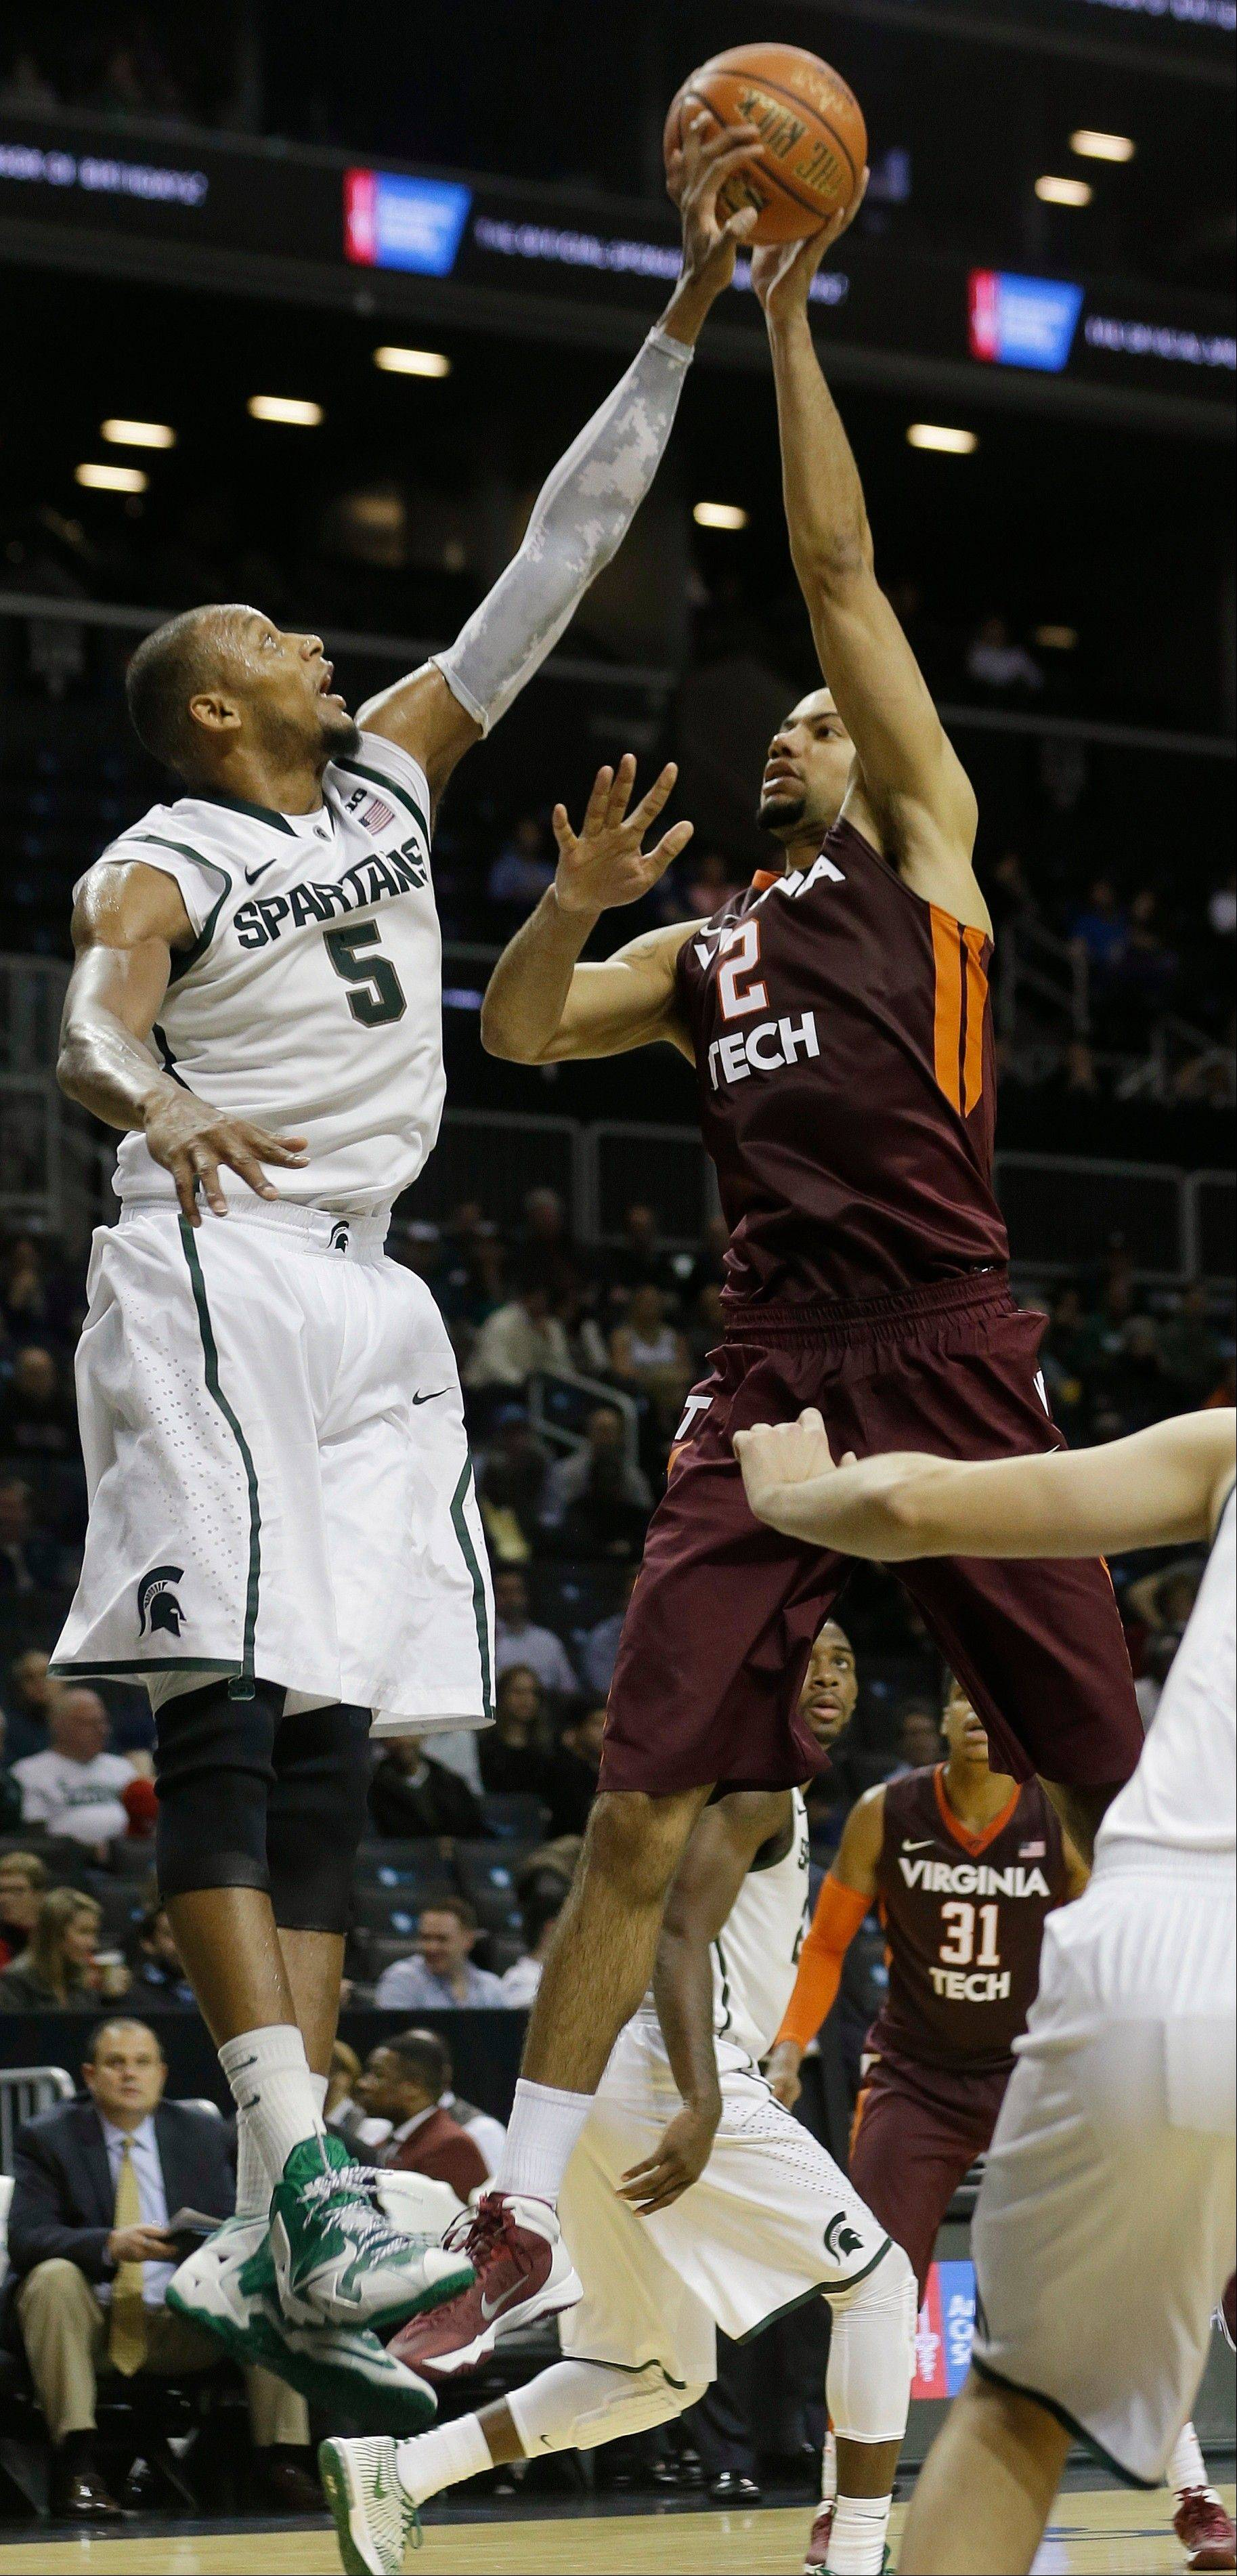 No. 1 Michigan St. pounds Virginia Tech 96-77